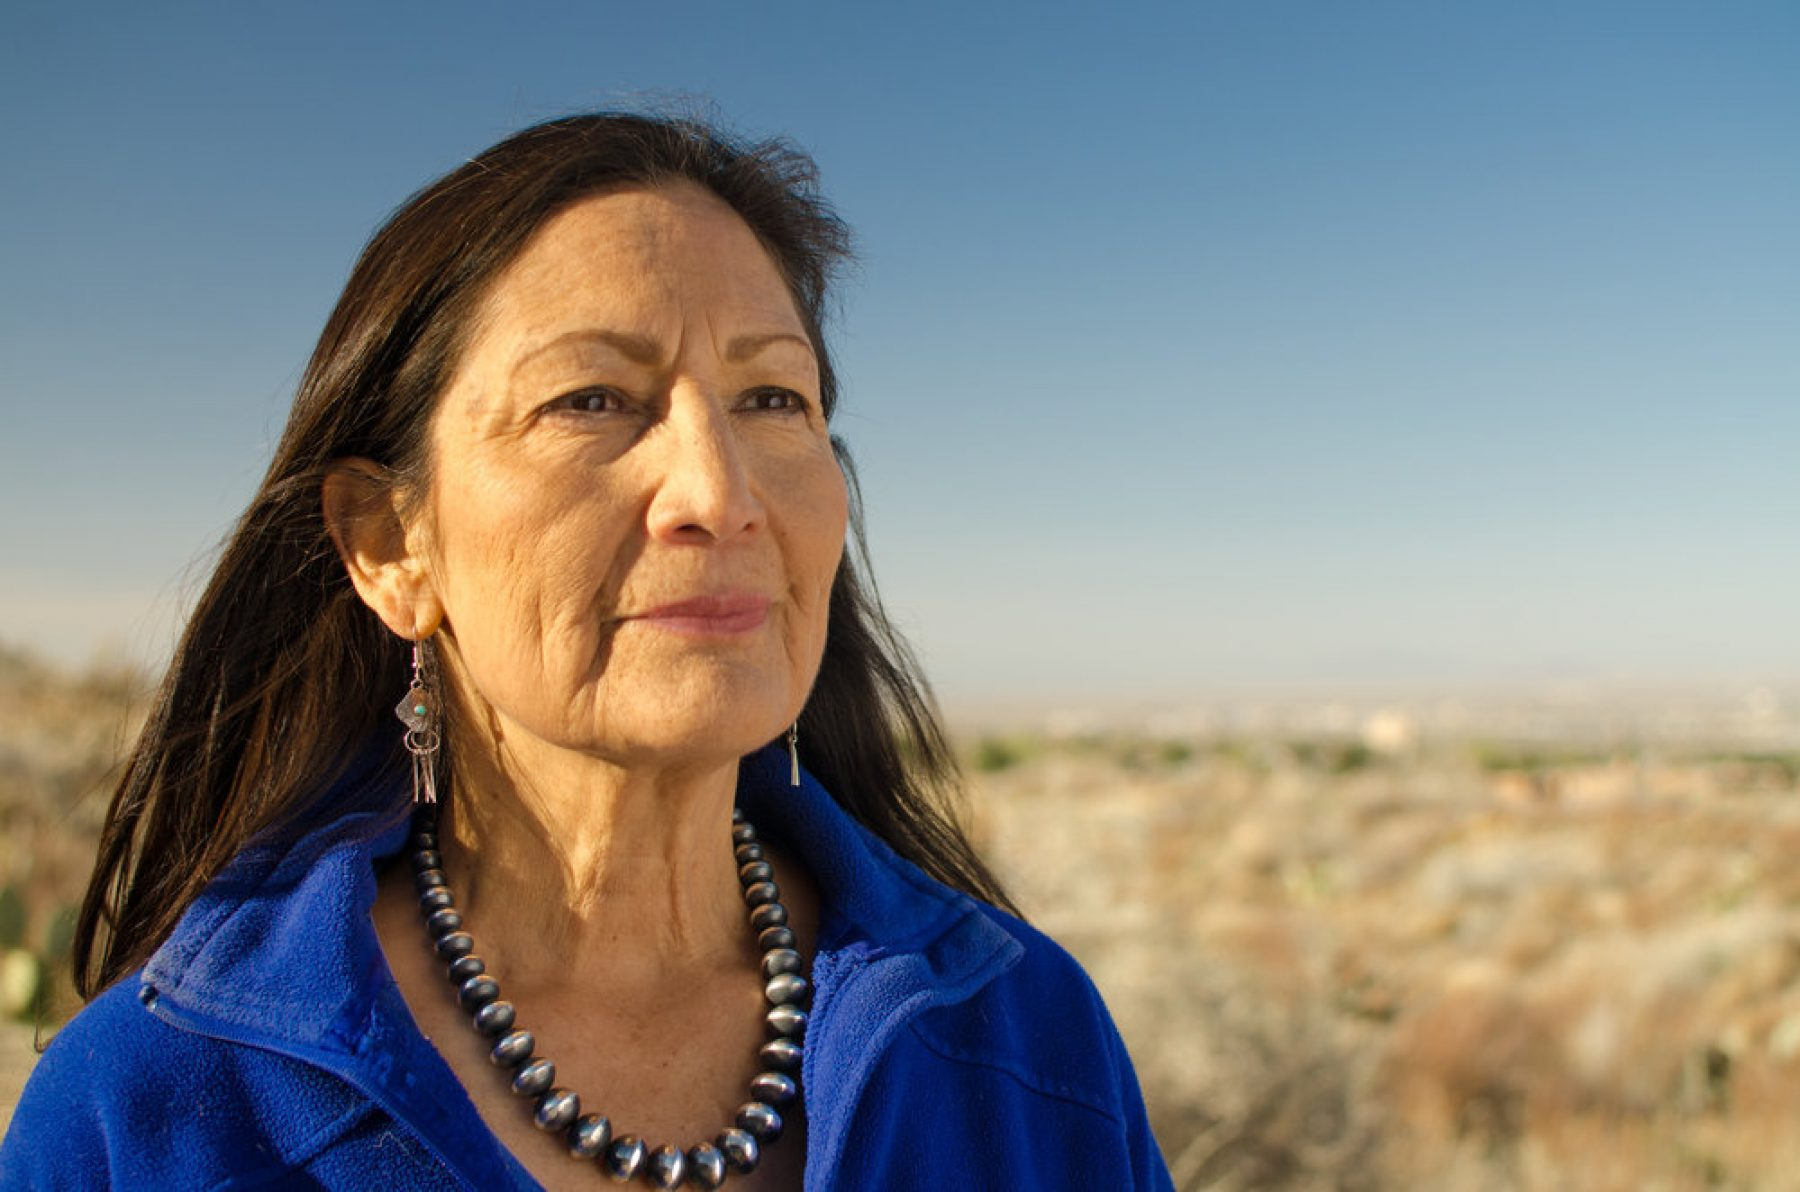 Image For I Want To Make History As The First Native American Woman In Congress